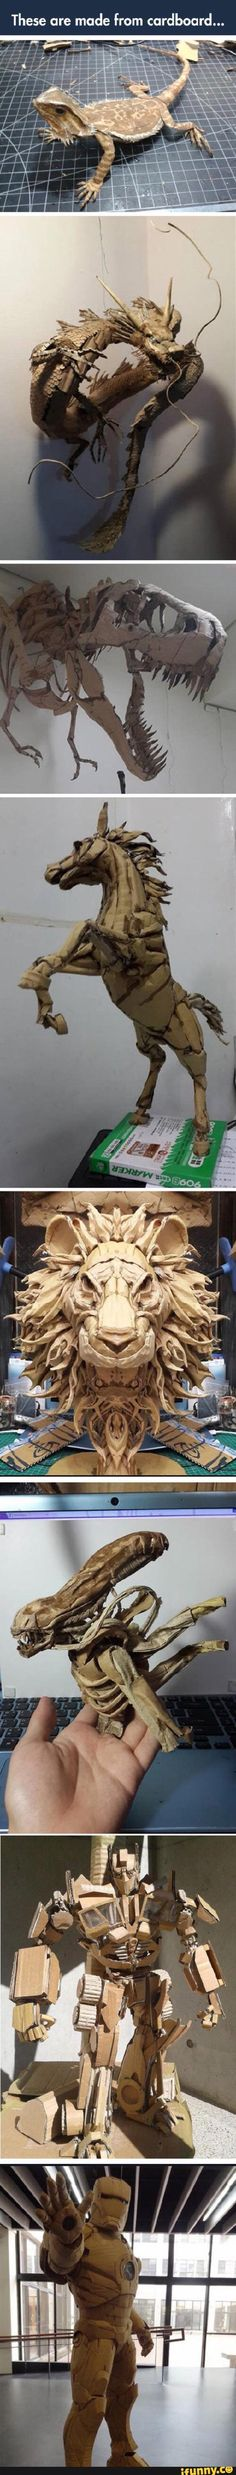 Awesome cardboard art I like it alot I can do that but simple things lmao yes I know freakin'Picasso